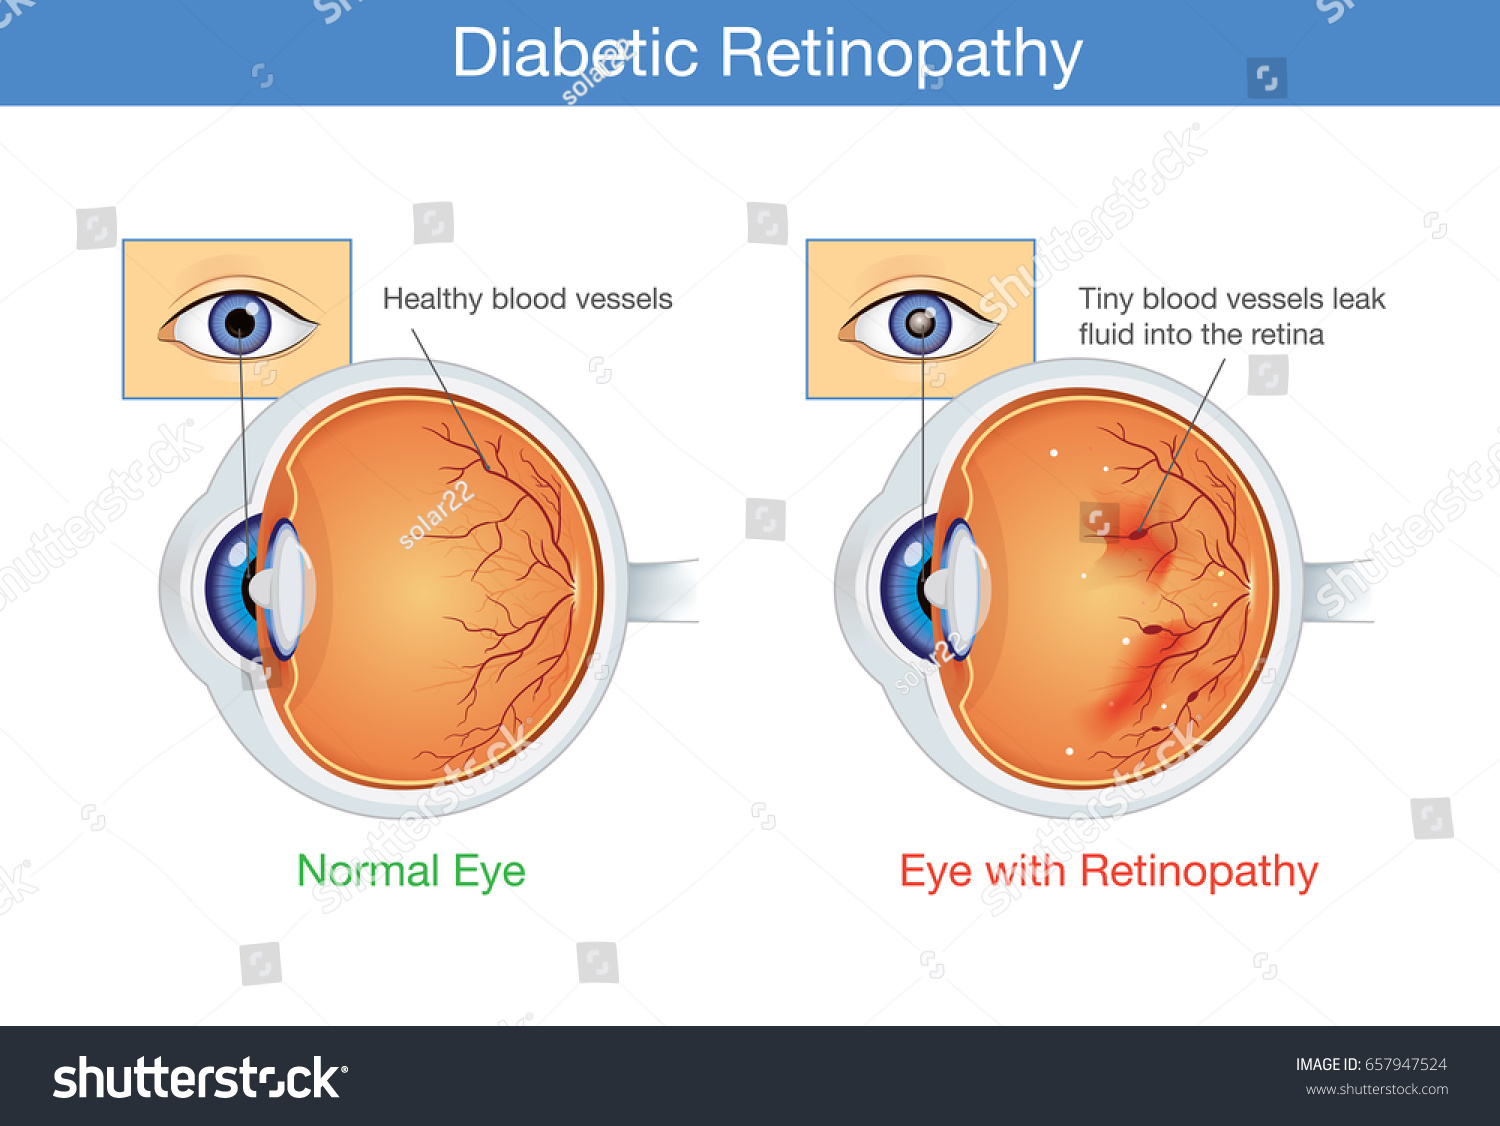 Anatomy Normal Eye Diabetic Retinopathy People Stock Vector ...